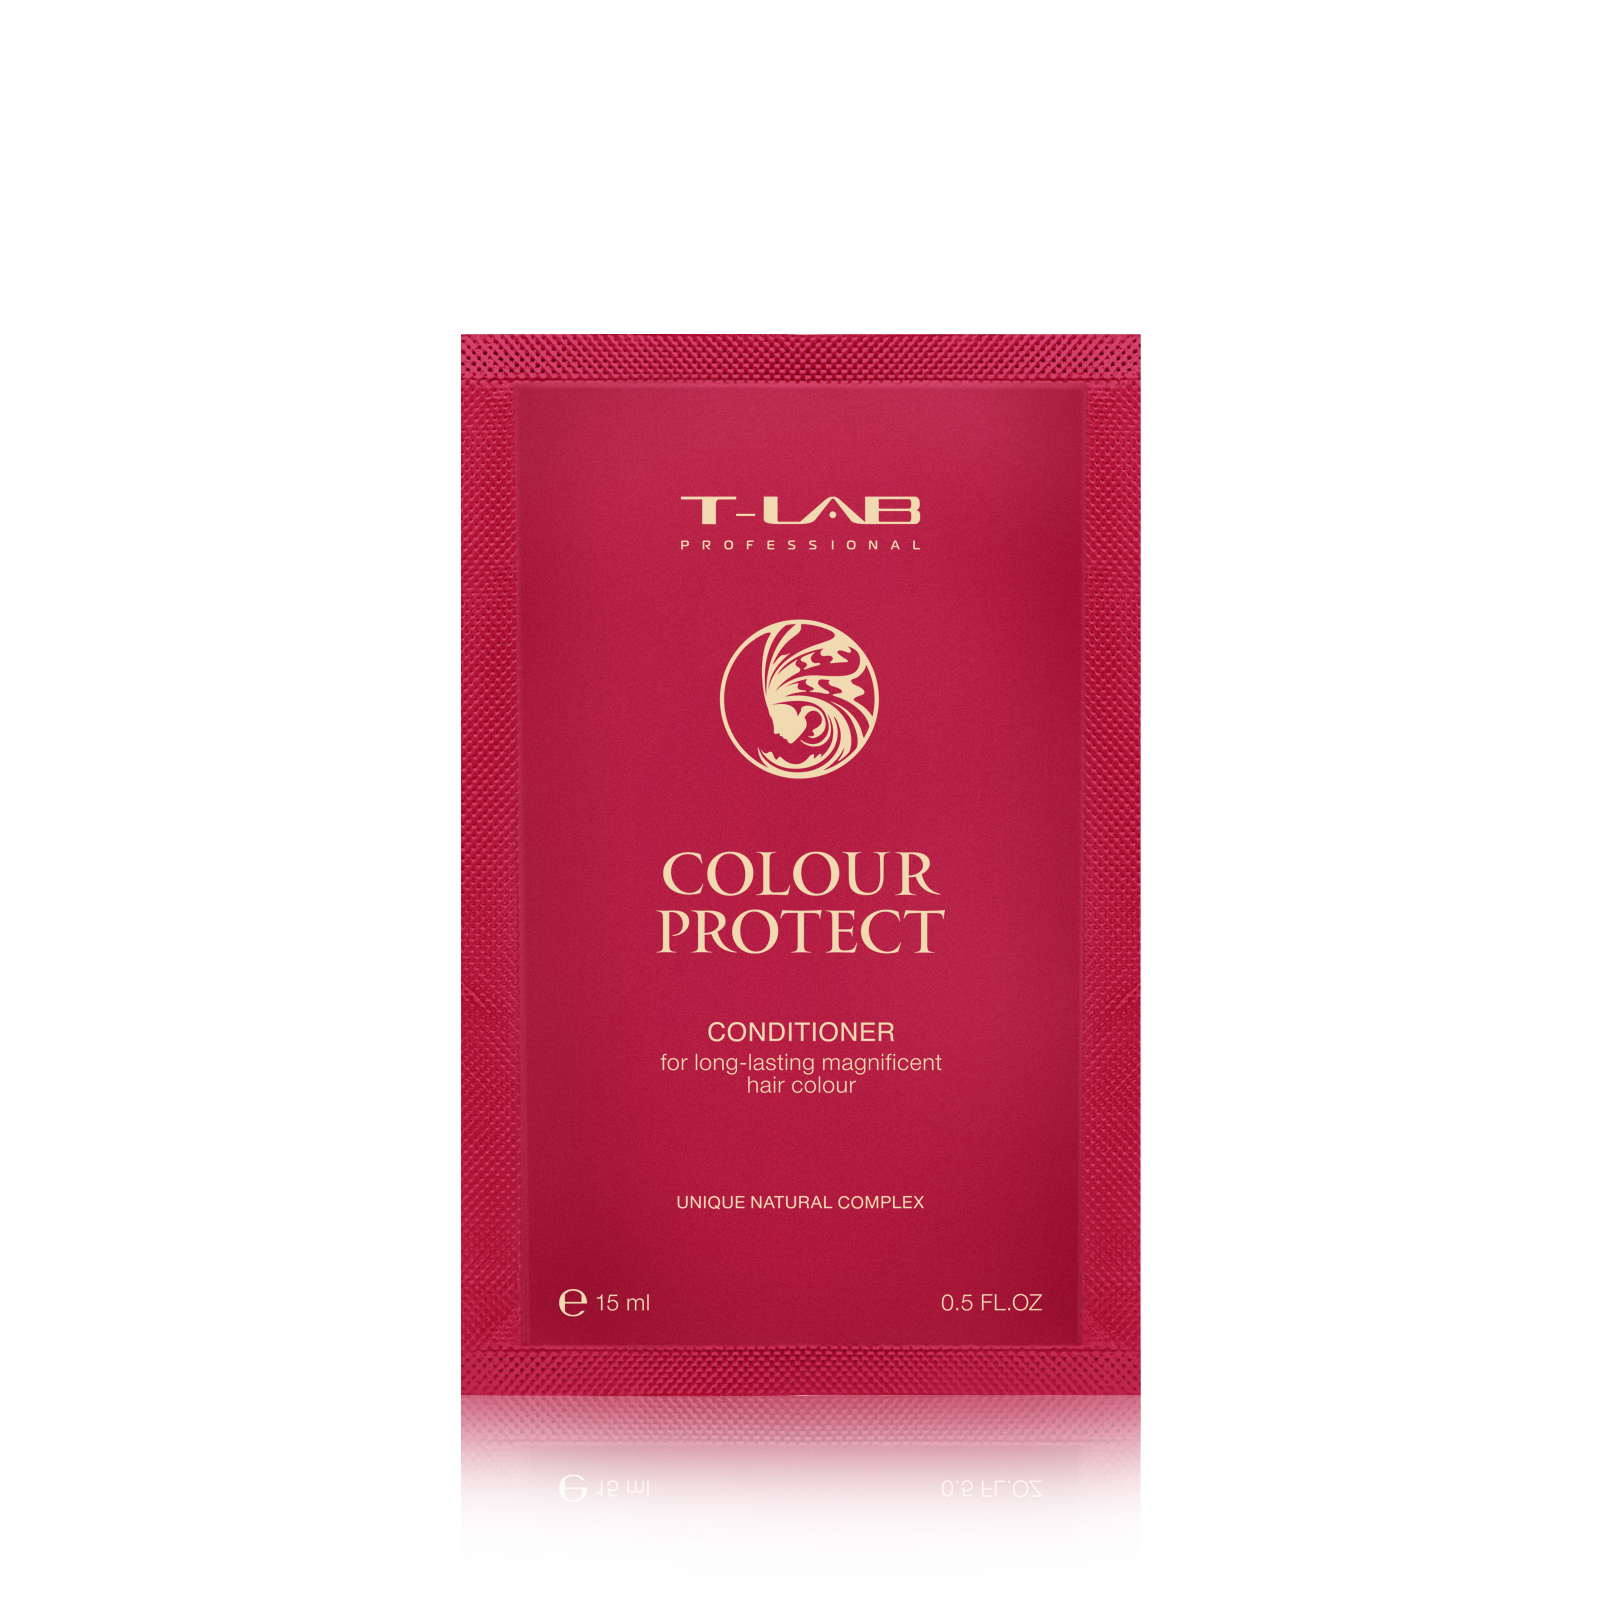 COLOUR PROTECT CONDITIONER 15 ml